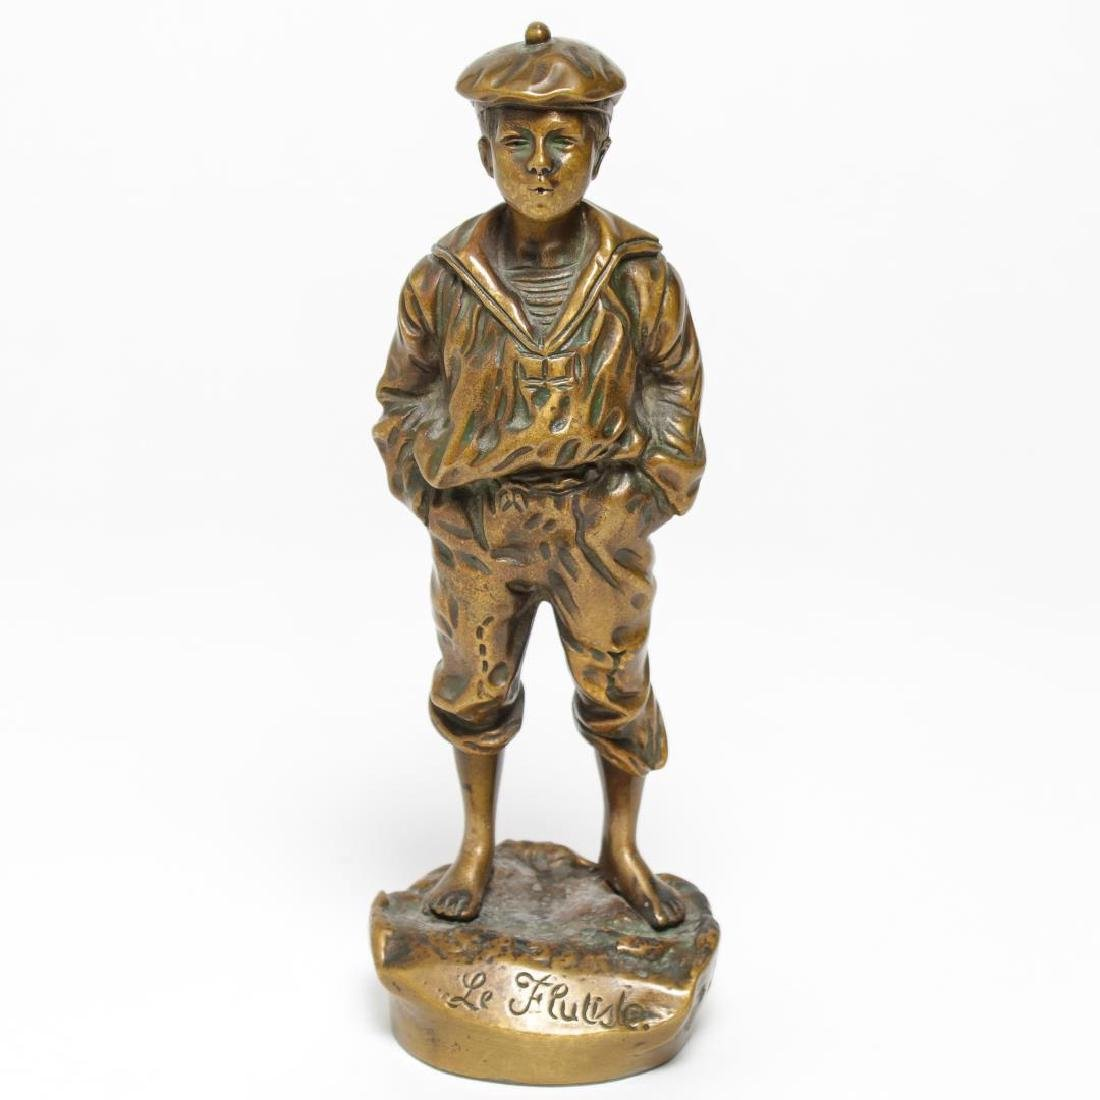 Vintage Bronze Tabletop Sculpture, Le Flutiste